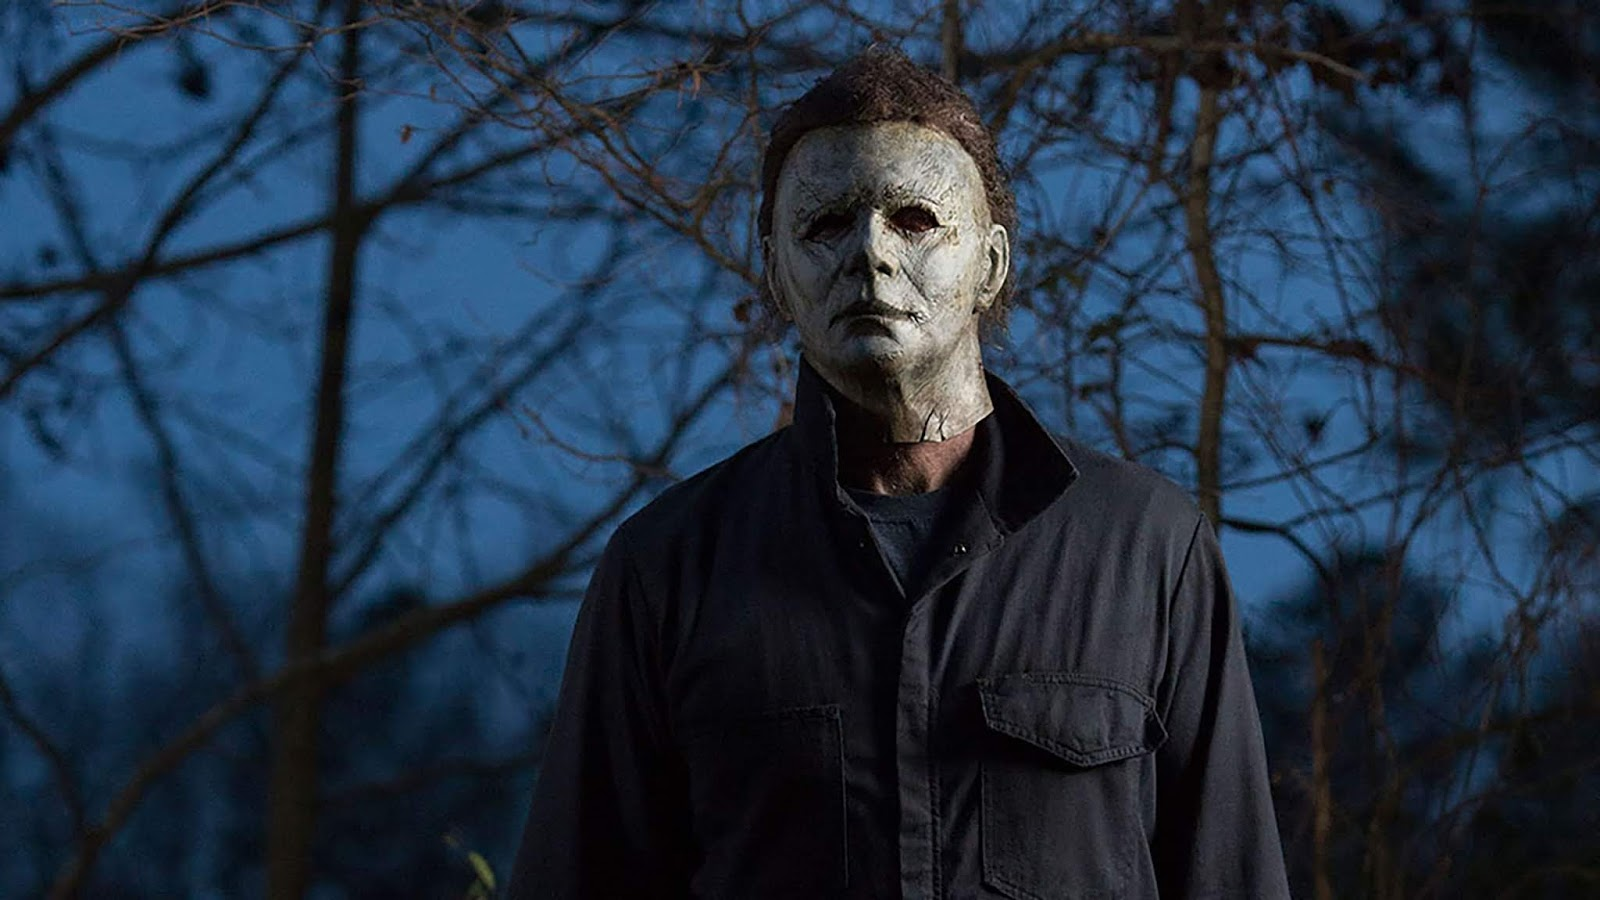 Reel Crime Episode 101: Halloween: The Michael Myers Legacy